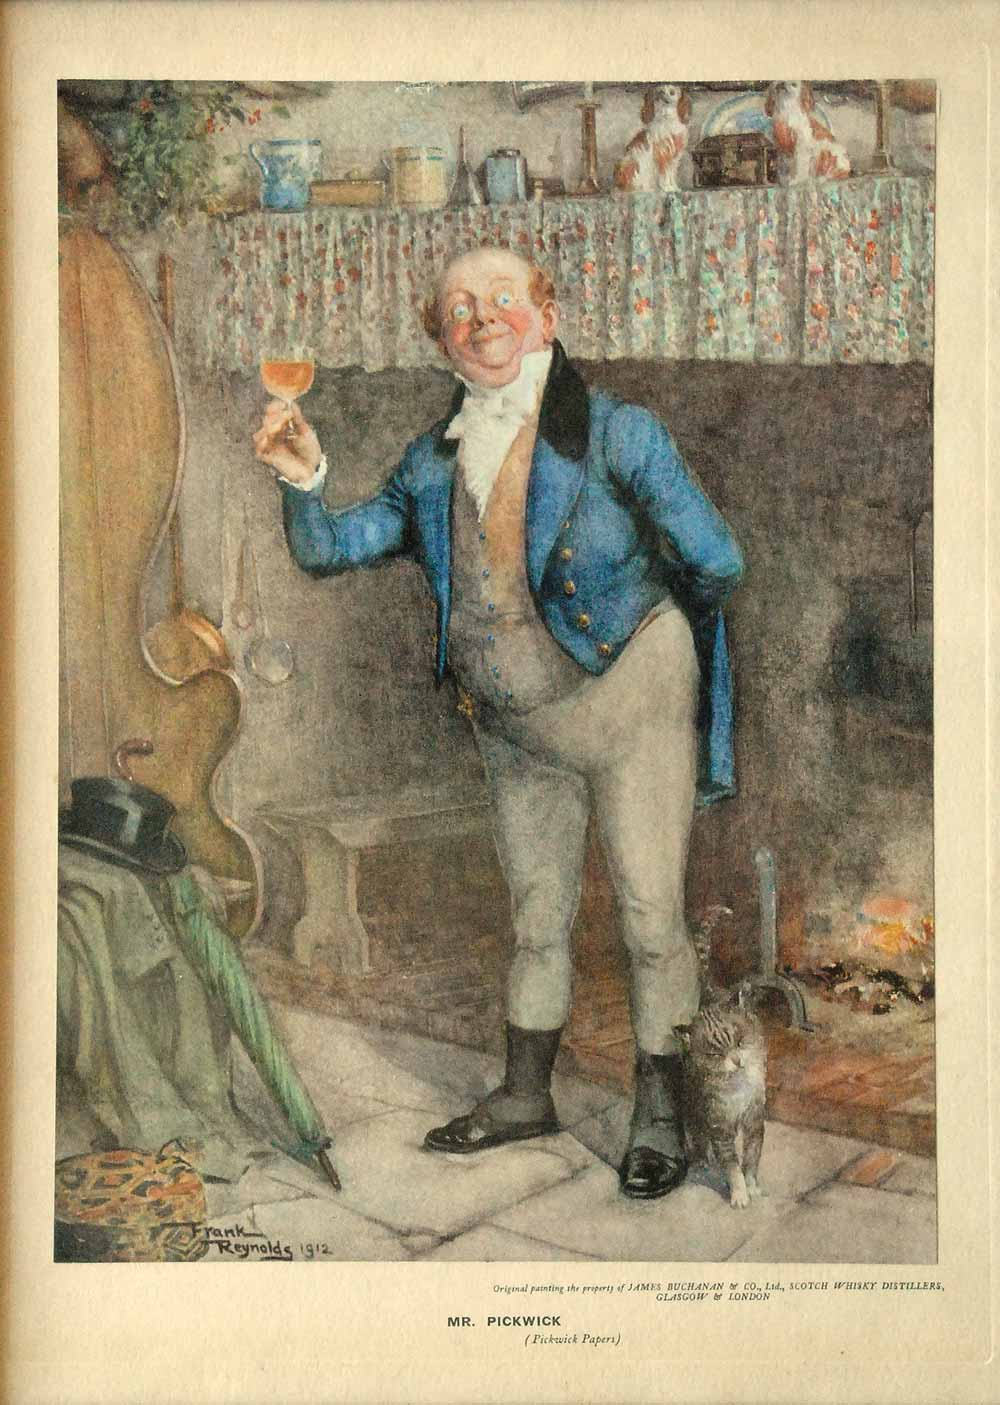 Framed reproduction of Frank Reynolds's painting of Mr. Pickwick, 1912.